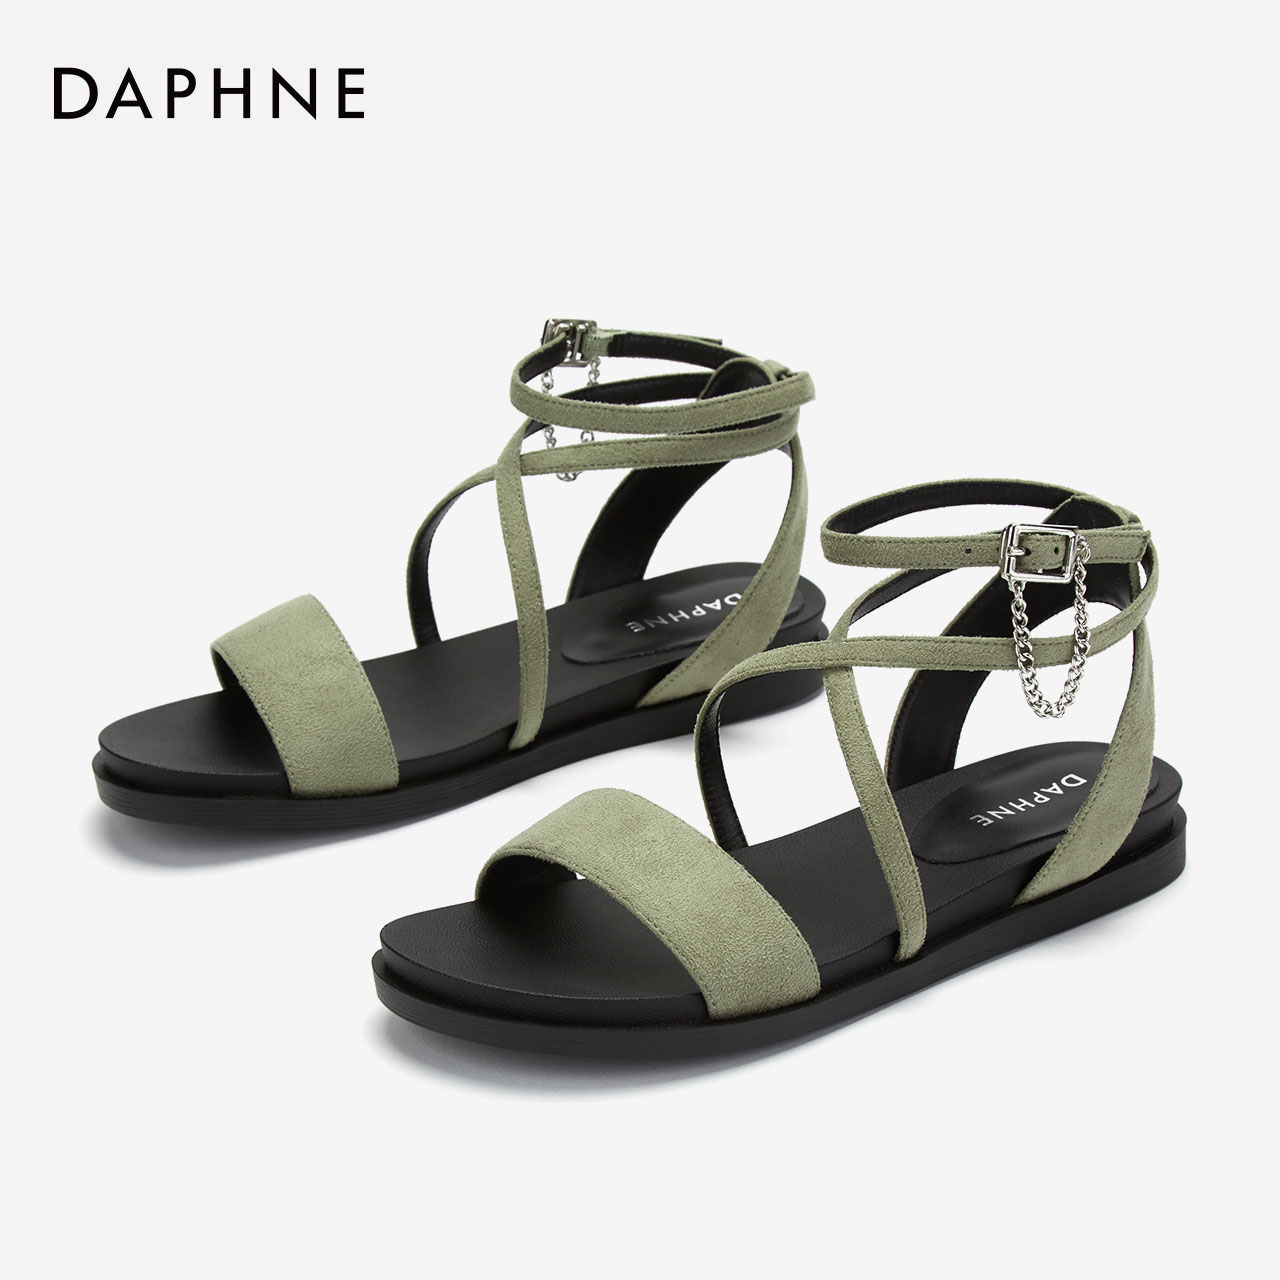 Daphne womens shoes 2020 summer new sandals Roman style around ankle flat sandals with suede stitching